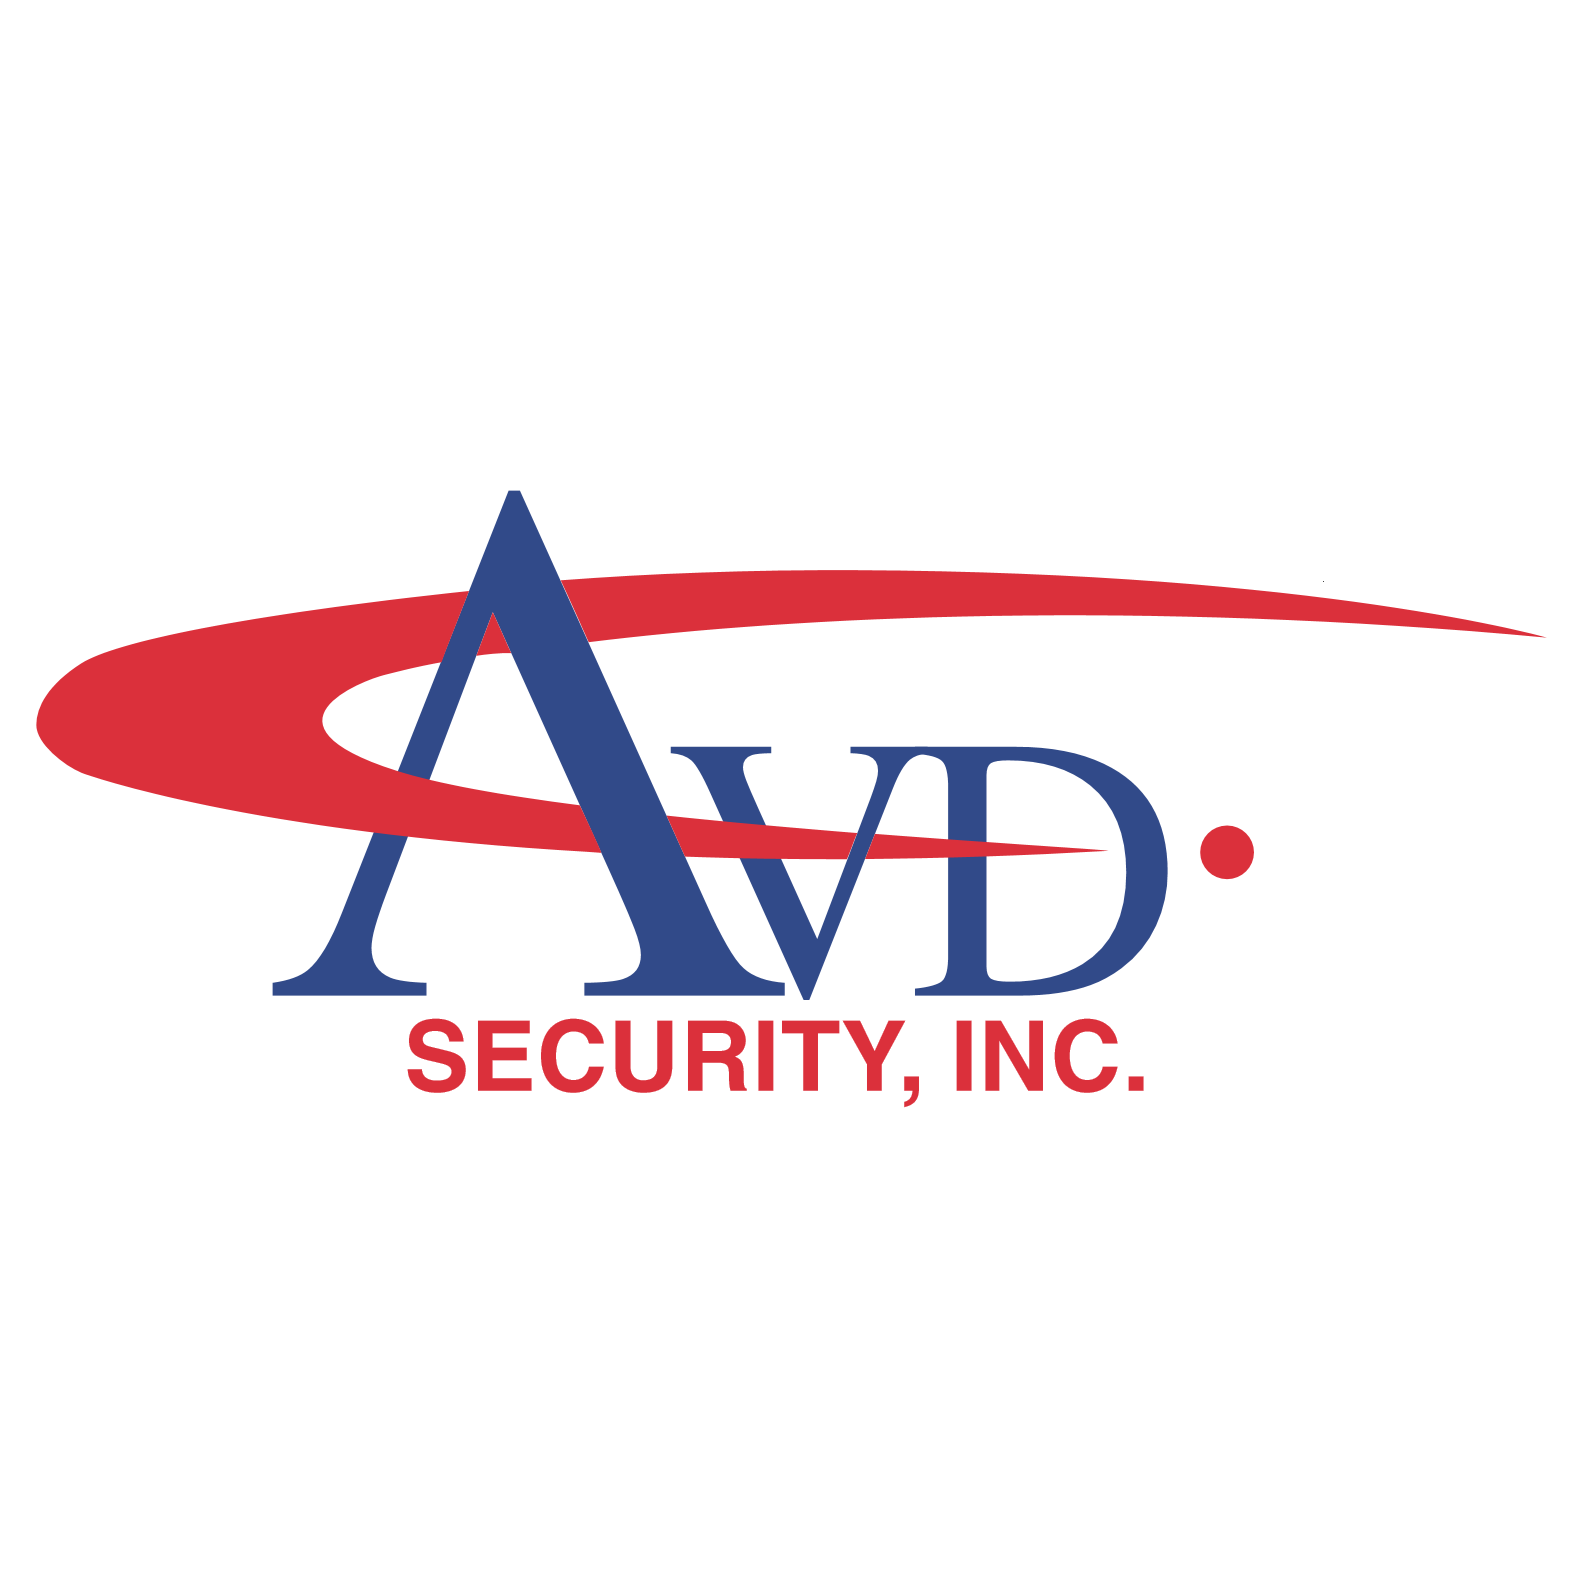 AVD Security